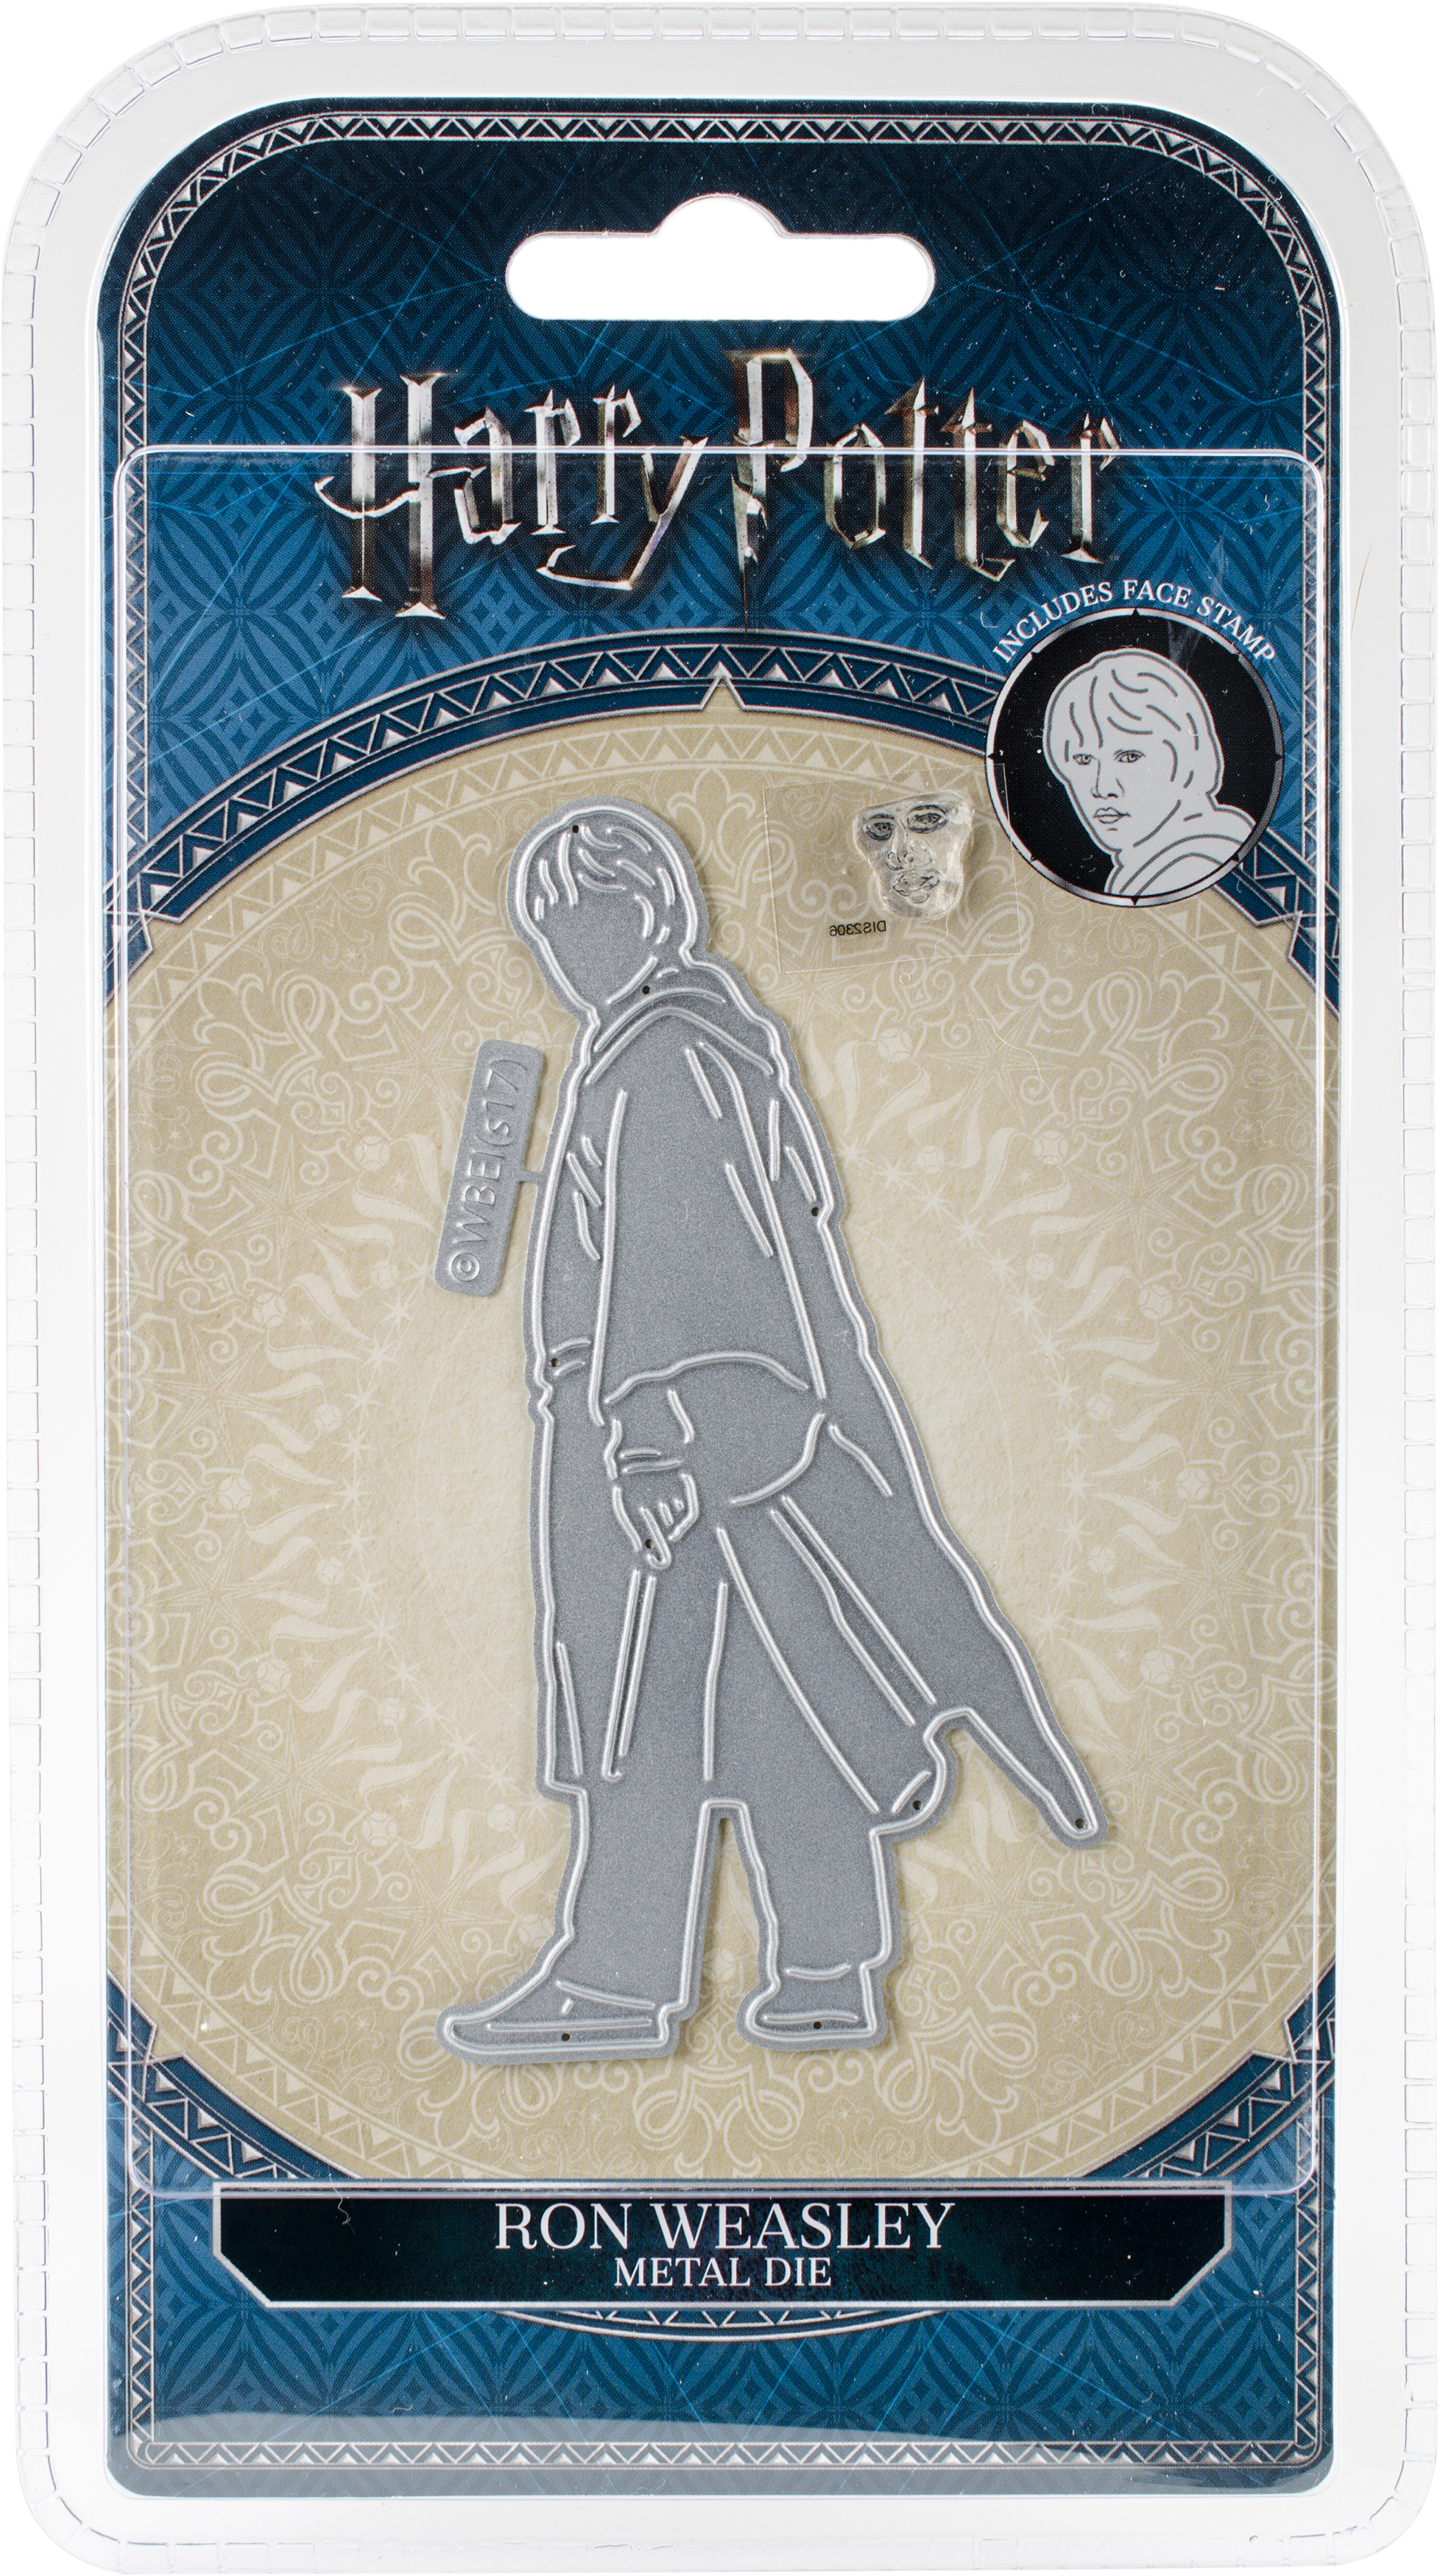 Harry Potter Die And Face Stamp Set-Ron Weasley